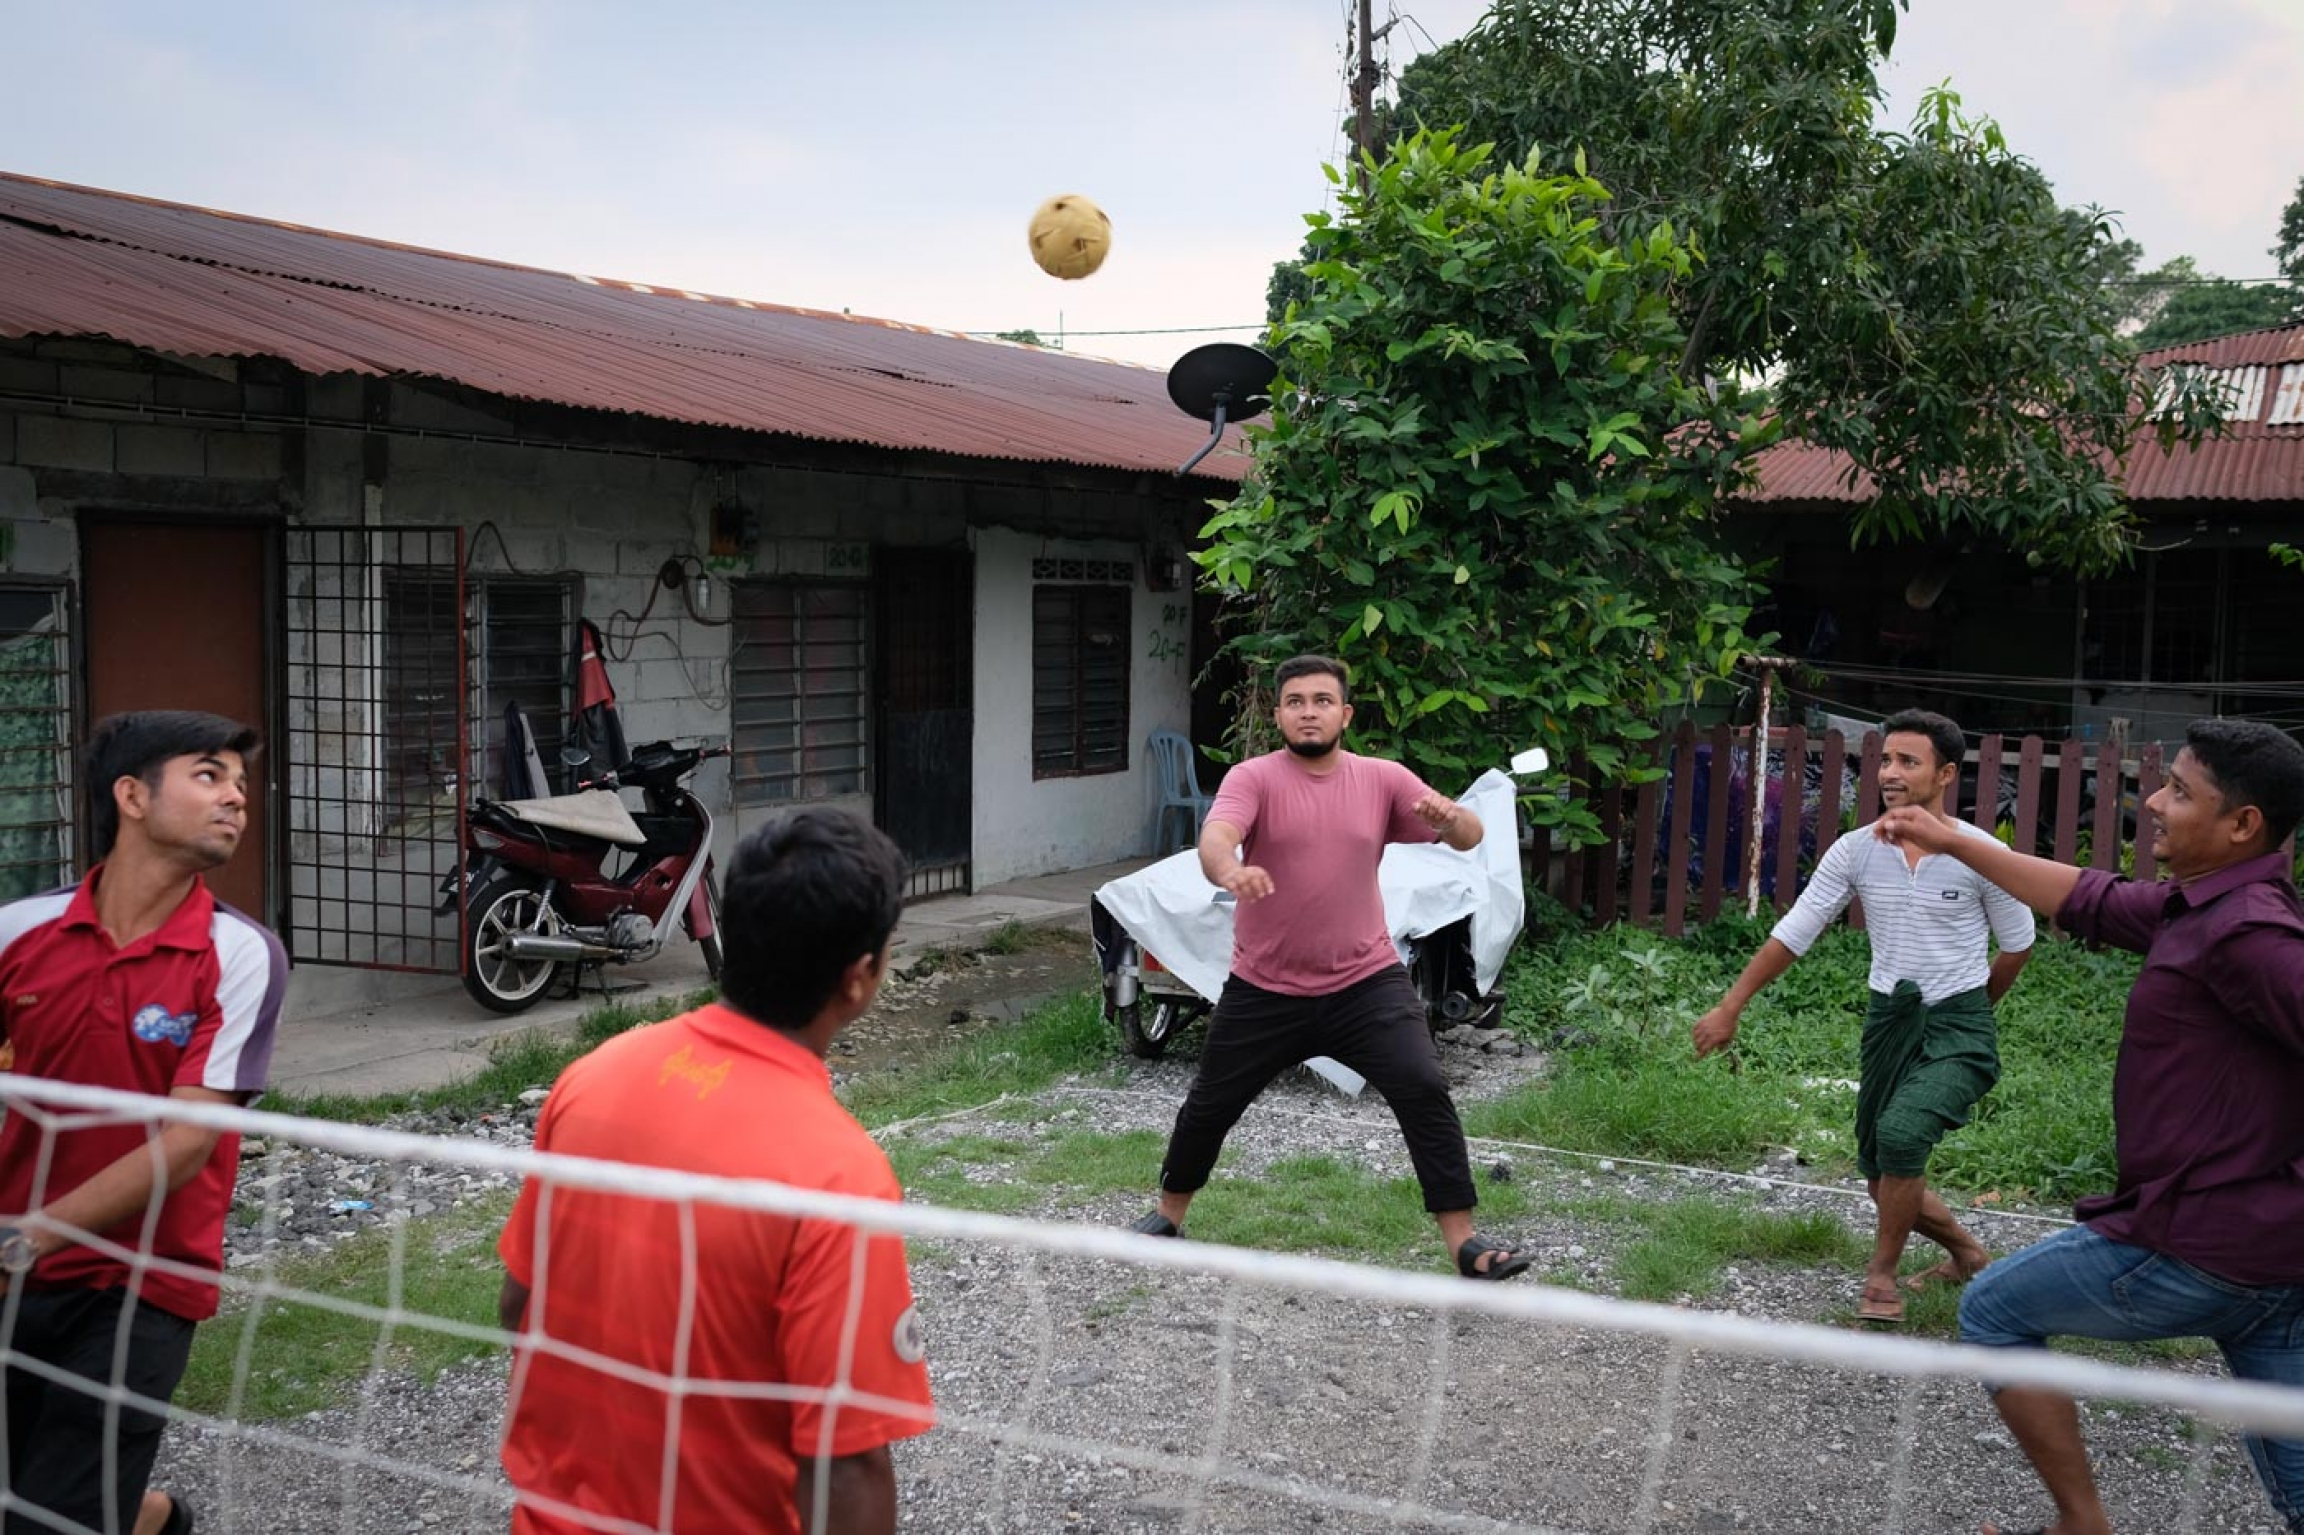 A group of young men play kick volleyball with a net